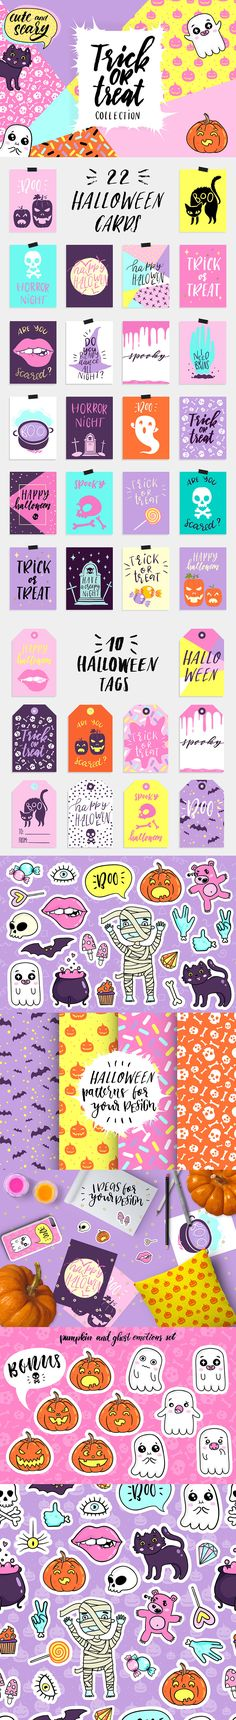 Other Gift and Party Supplies 170115 Raffle Tickets 4 Rolls Of - fun poster templates